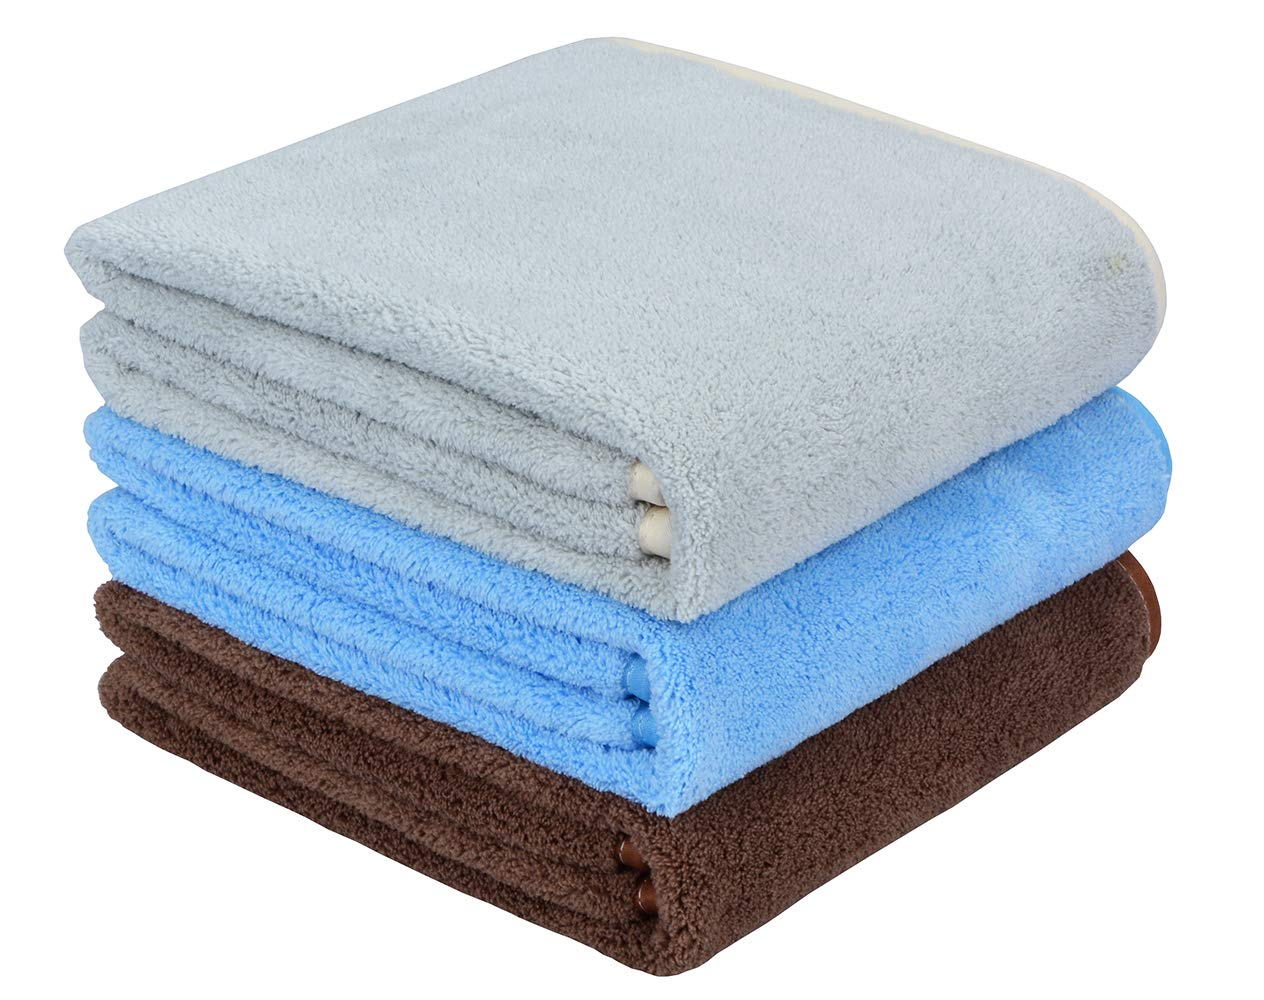 Hand Towels for Bathroom Hand Towel Set of 3 Super Soft Plush for Baby and Kids Multipurpose Microfiber Towels for Hand, Face, Spa for Women Gym Quick Drying Absorbent (Grey + Sky Blue + Brown)